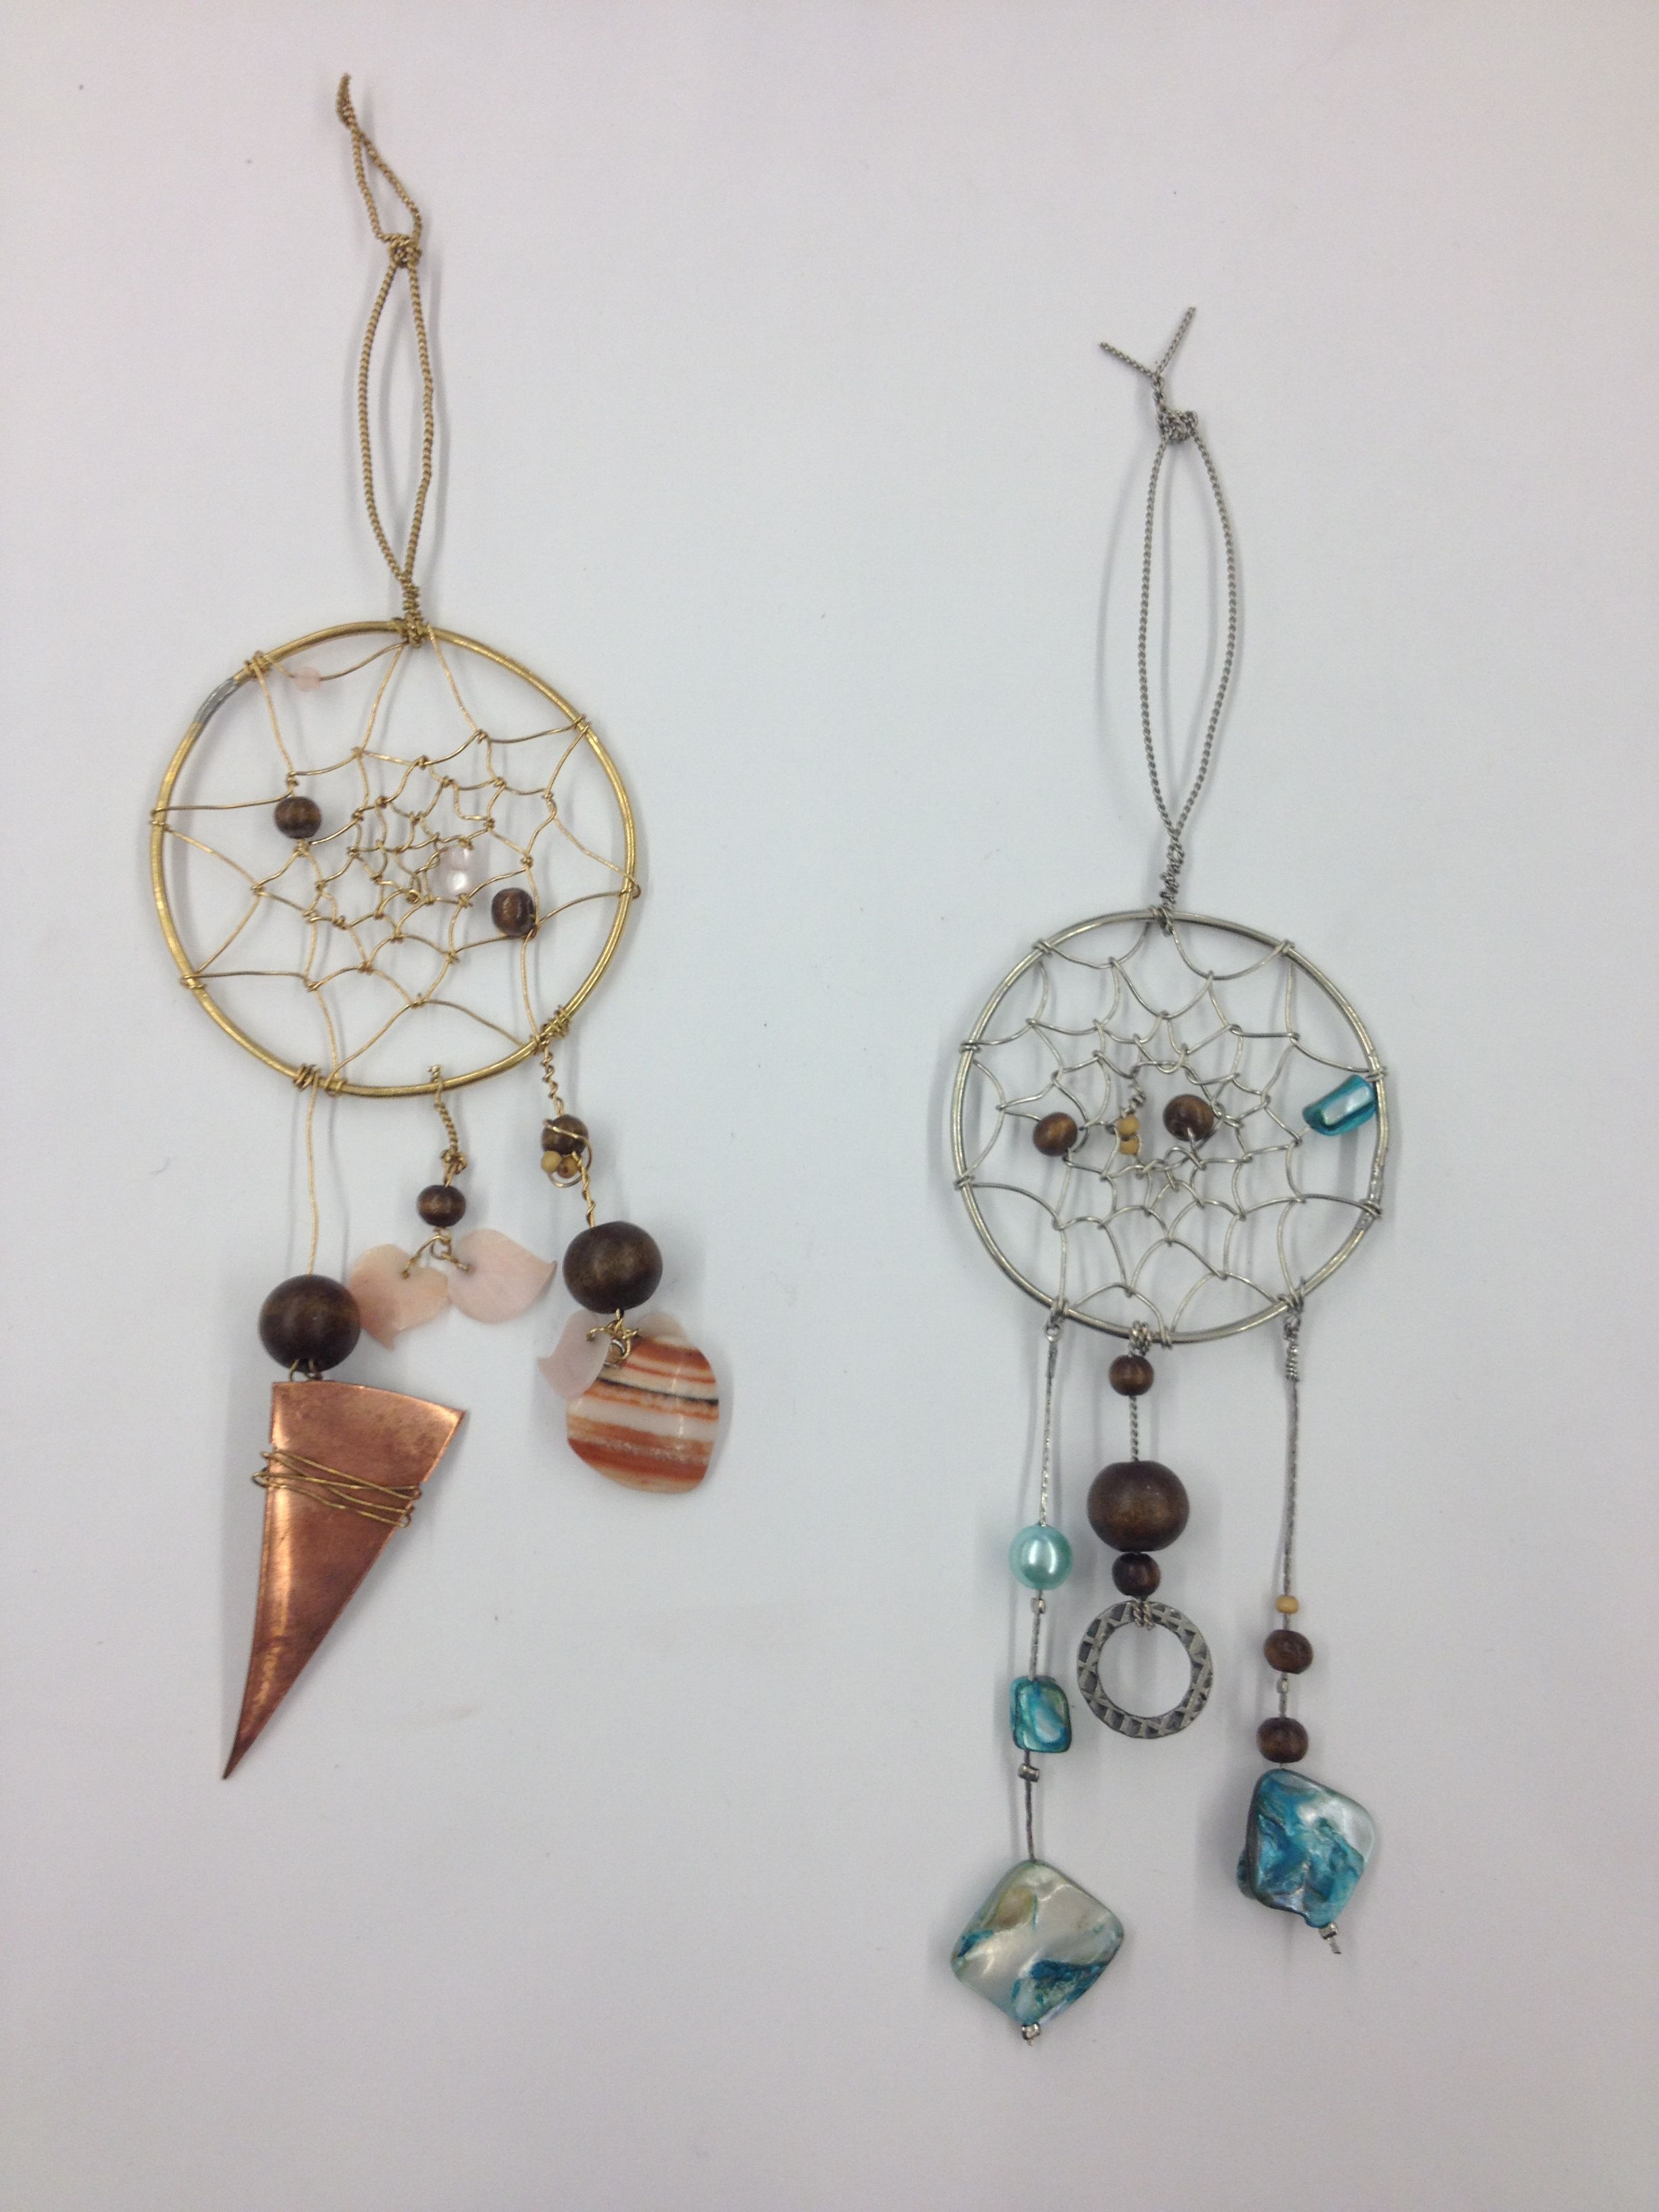 Metal dream catchers from wire and beads